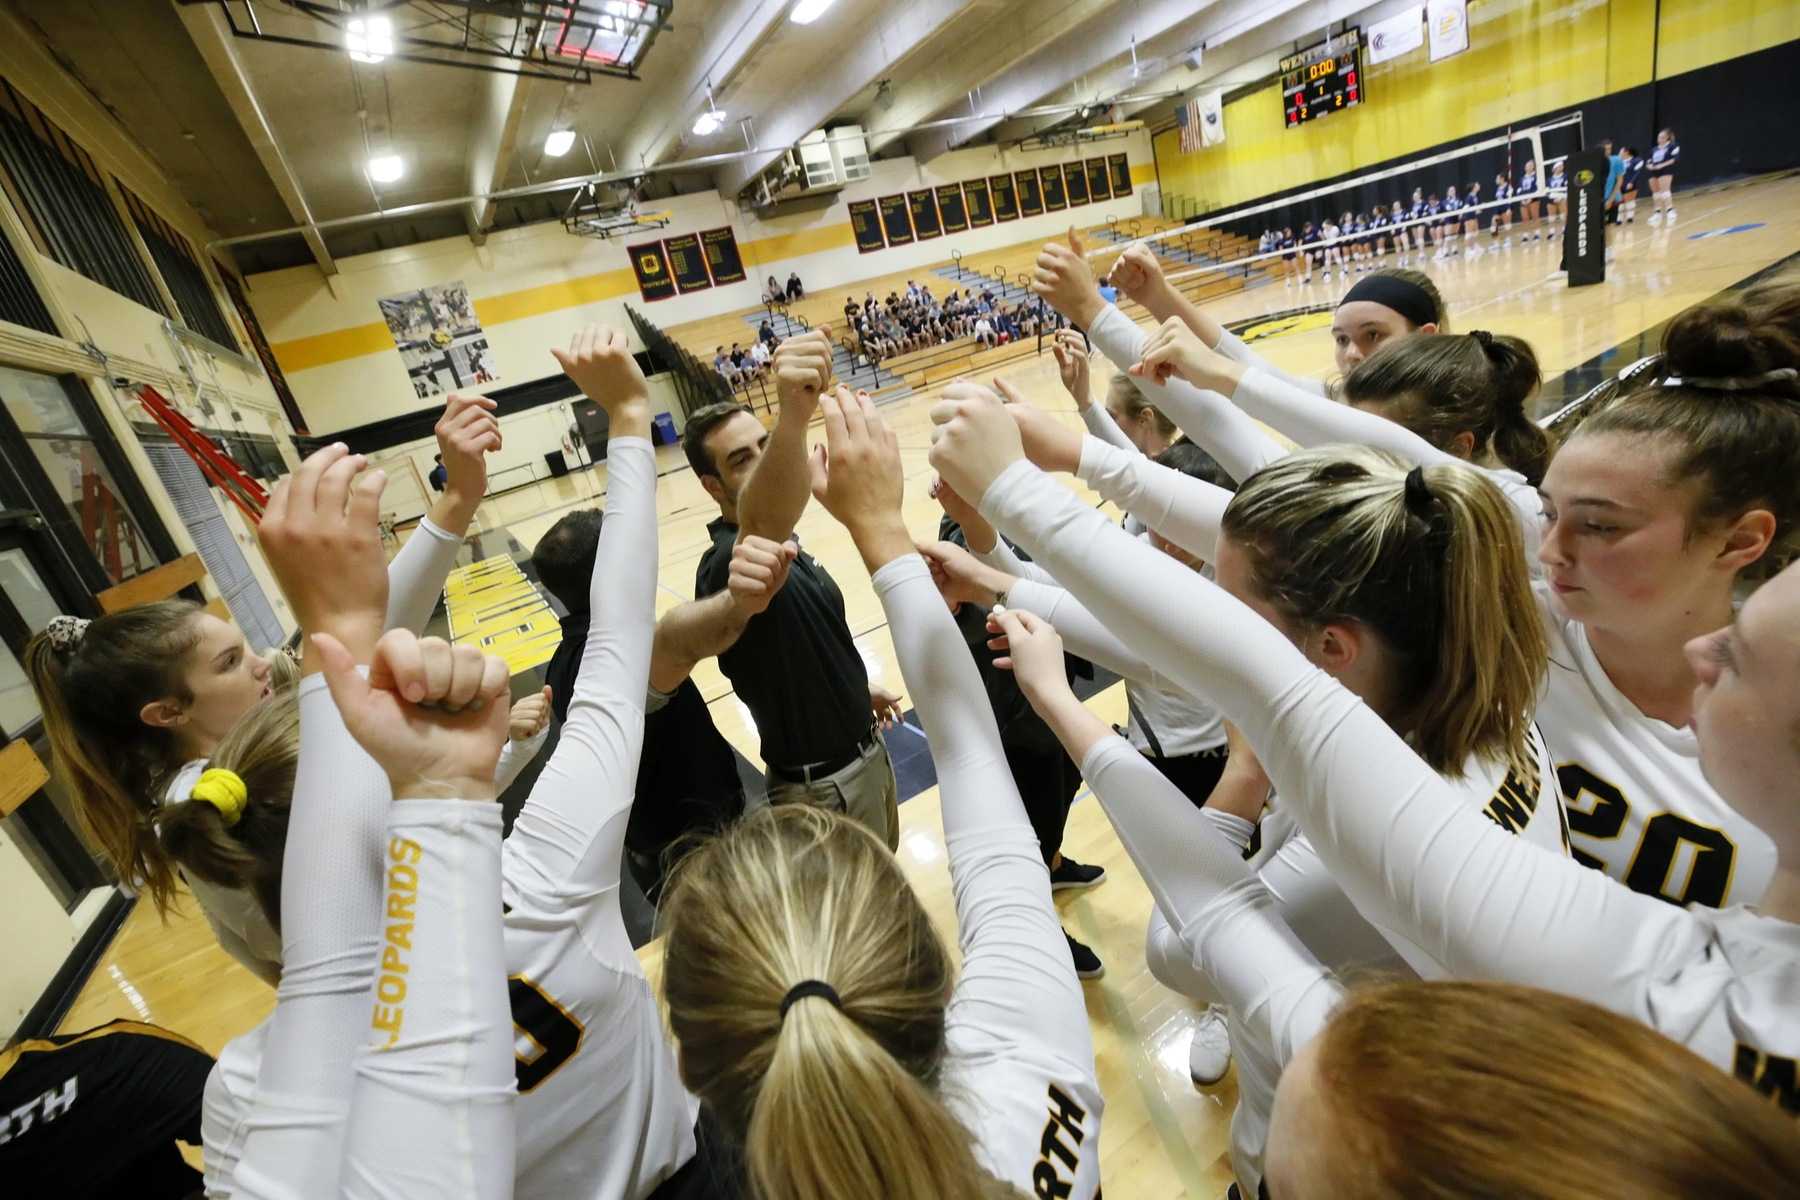 Emerson Overpowers Women's Volleyball in Non-Conference Thriller